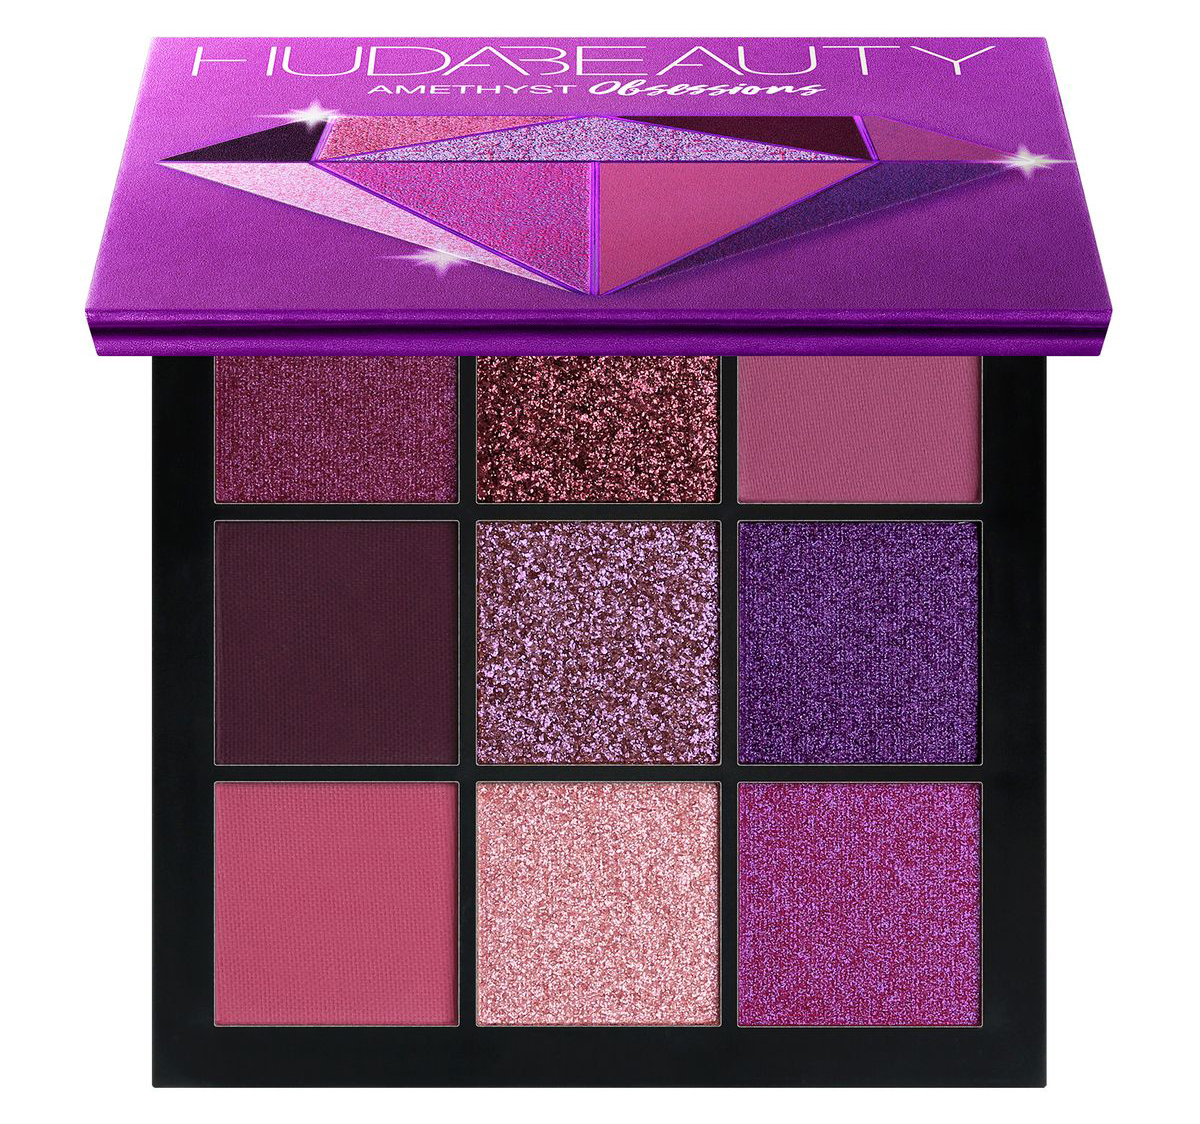 Huda Beauty Palette Precious Stones Obsessions Amethyst